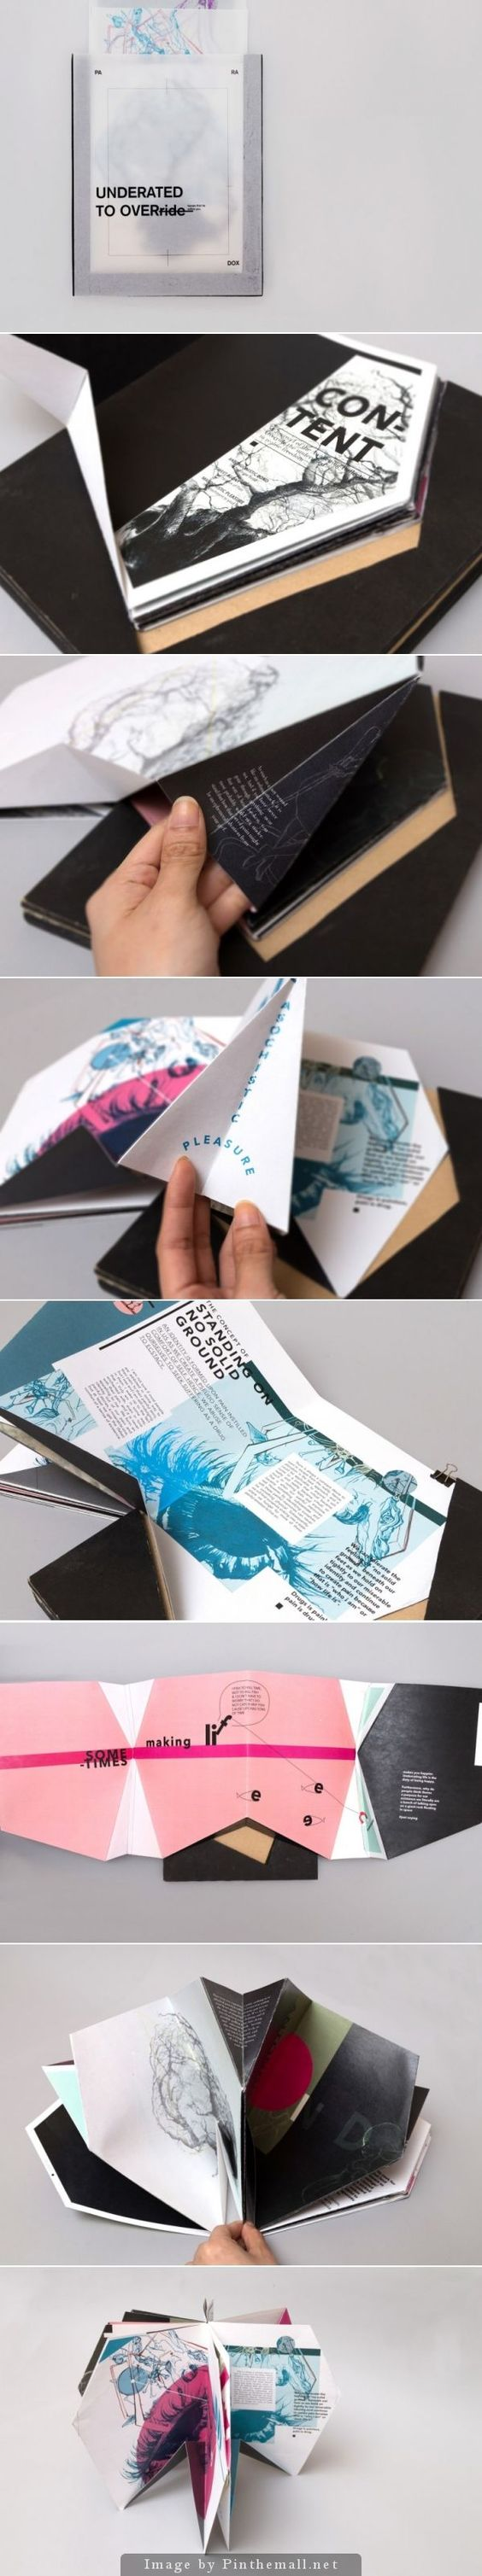 Awesome and interesting print layout